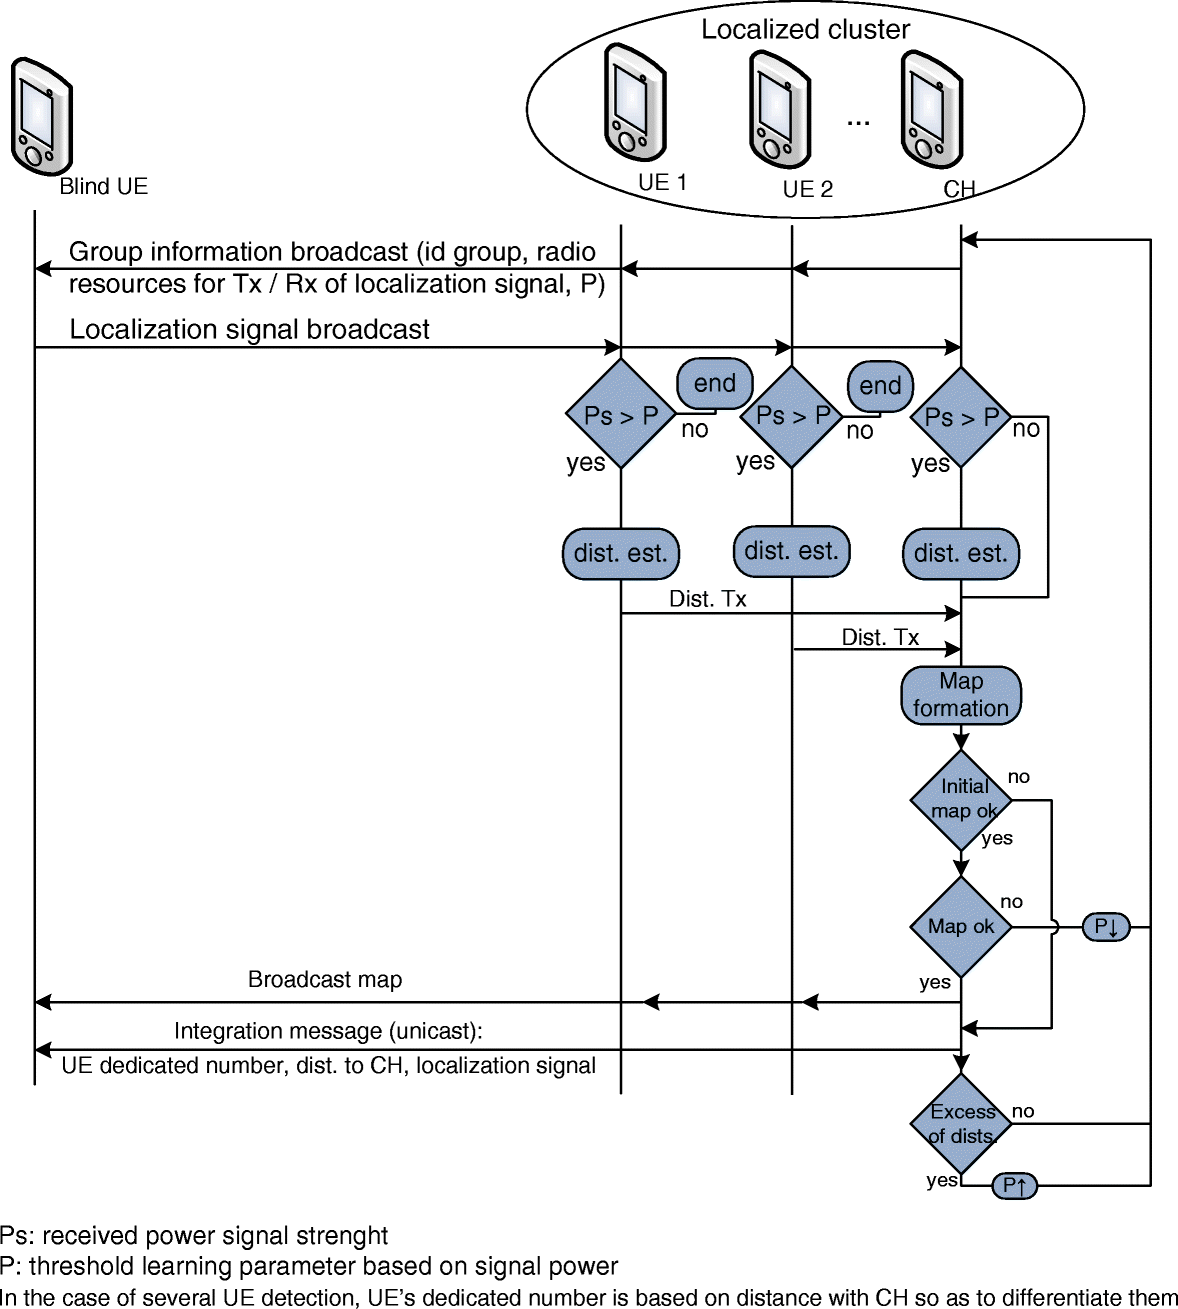 The Virtual Small Cells Based On Ue Positioning A Network 2013 F 150 Wiring Diagram Rear Sonar Fig 10